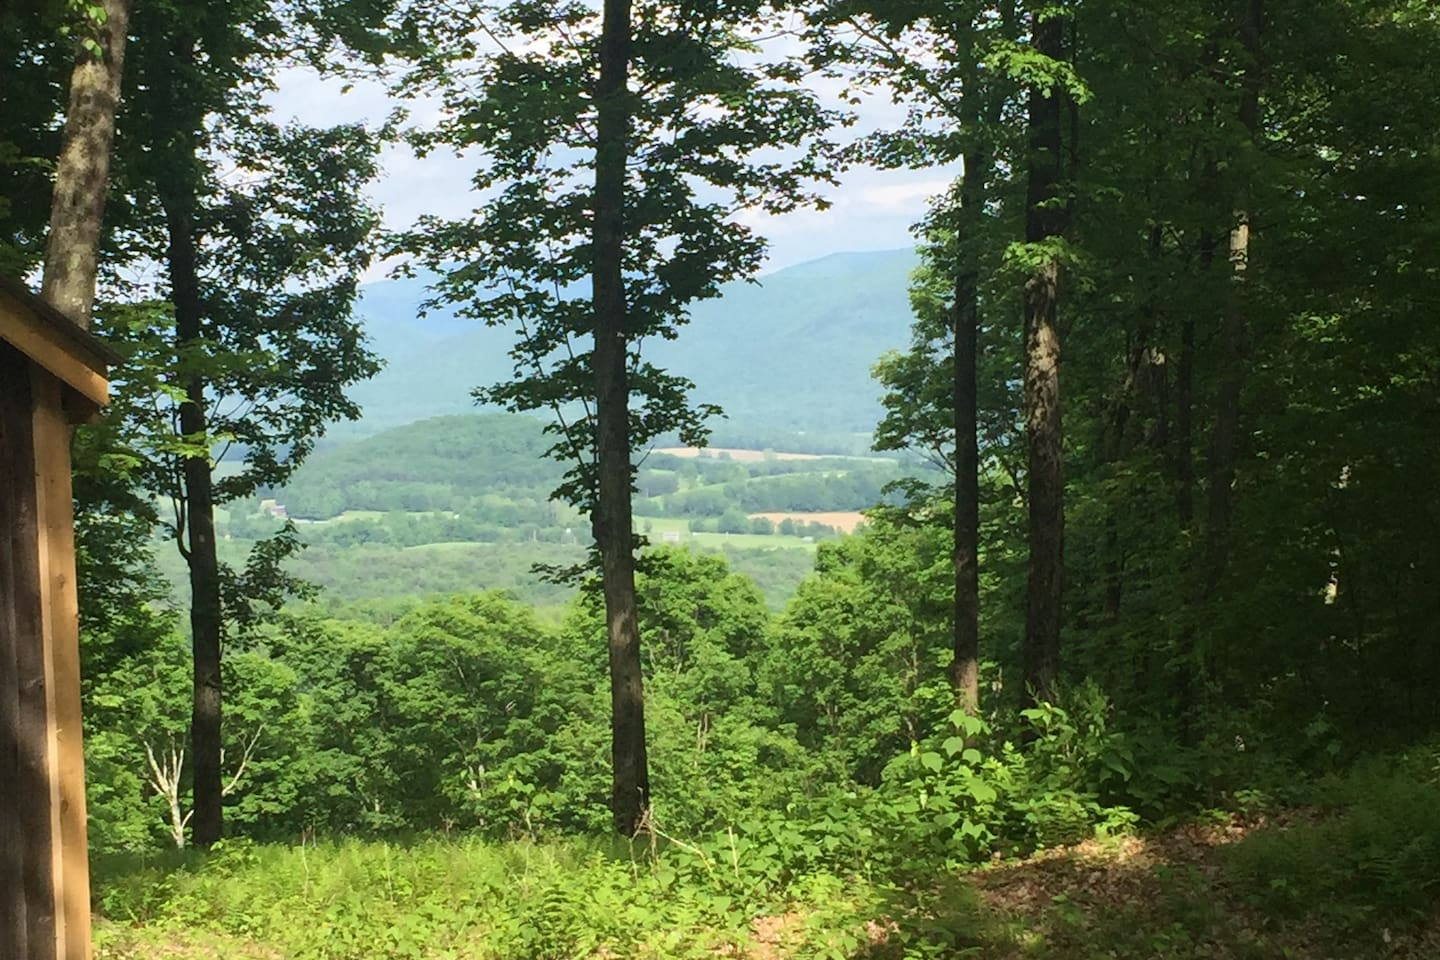 100 Acres with cabin on Mountaintop viewing the Green Mountains! Breathtaking views of the Battenkill Valley, see the picturesque farmland while relaxing after a days hiking.  Deer, rabbit, squirrels, chipmunks, raptors, song birds, diverse fauna...